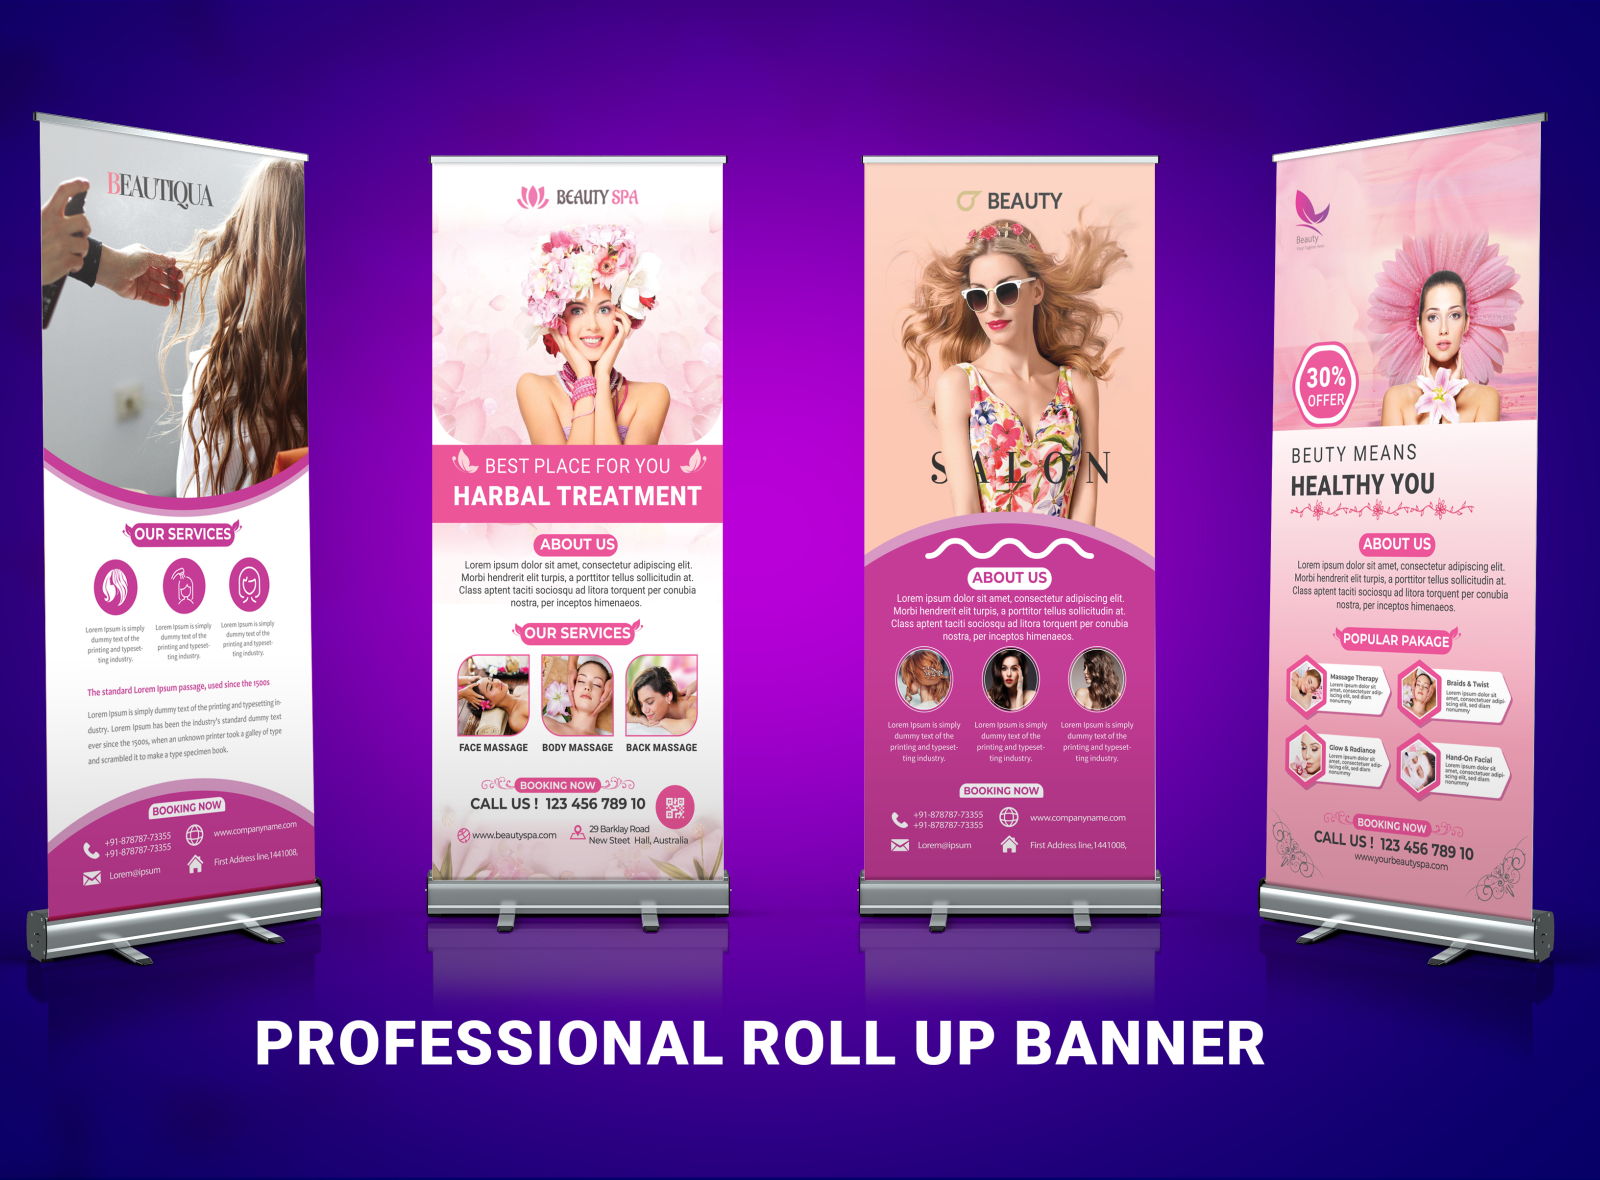 Spa Roll Up Banner Design 2020 With Free Mockup By Md Rahmat Ali On Dribbble